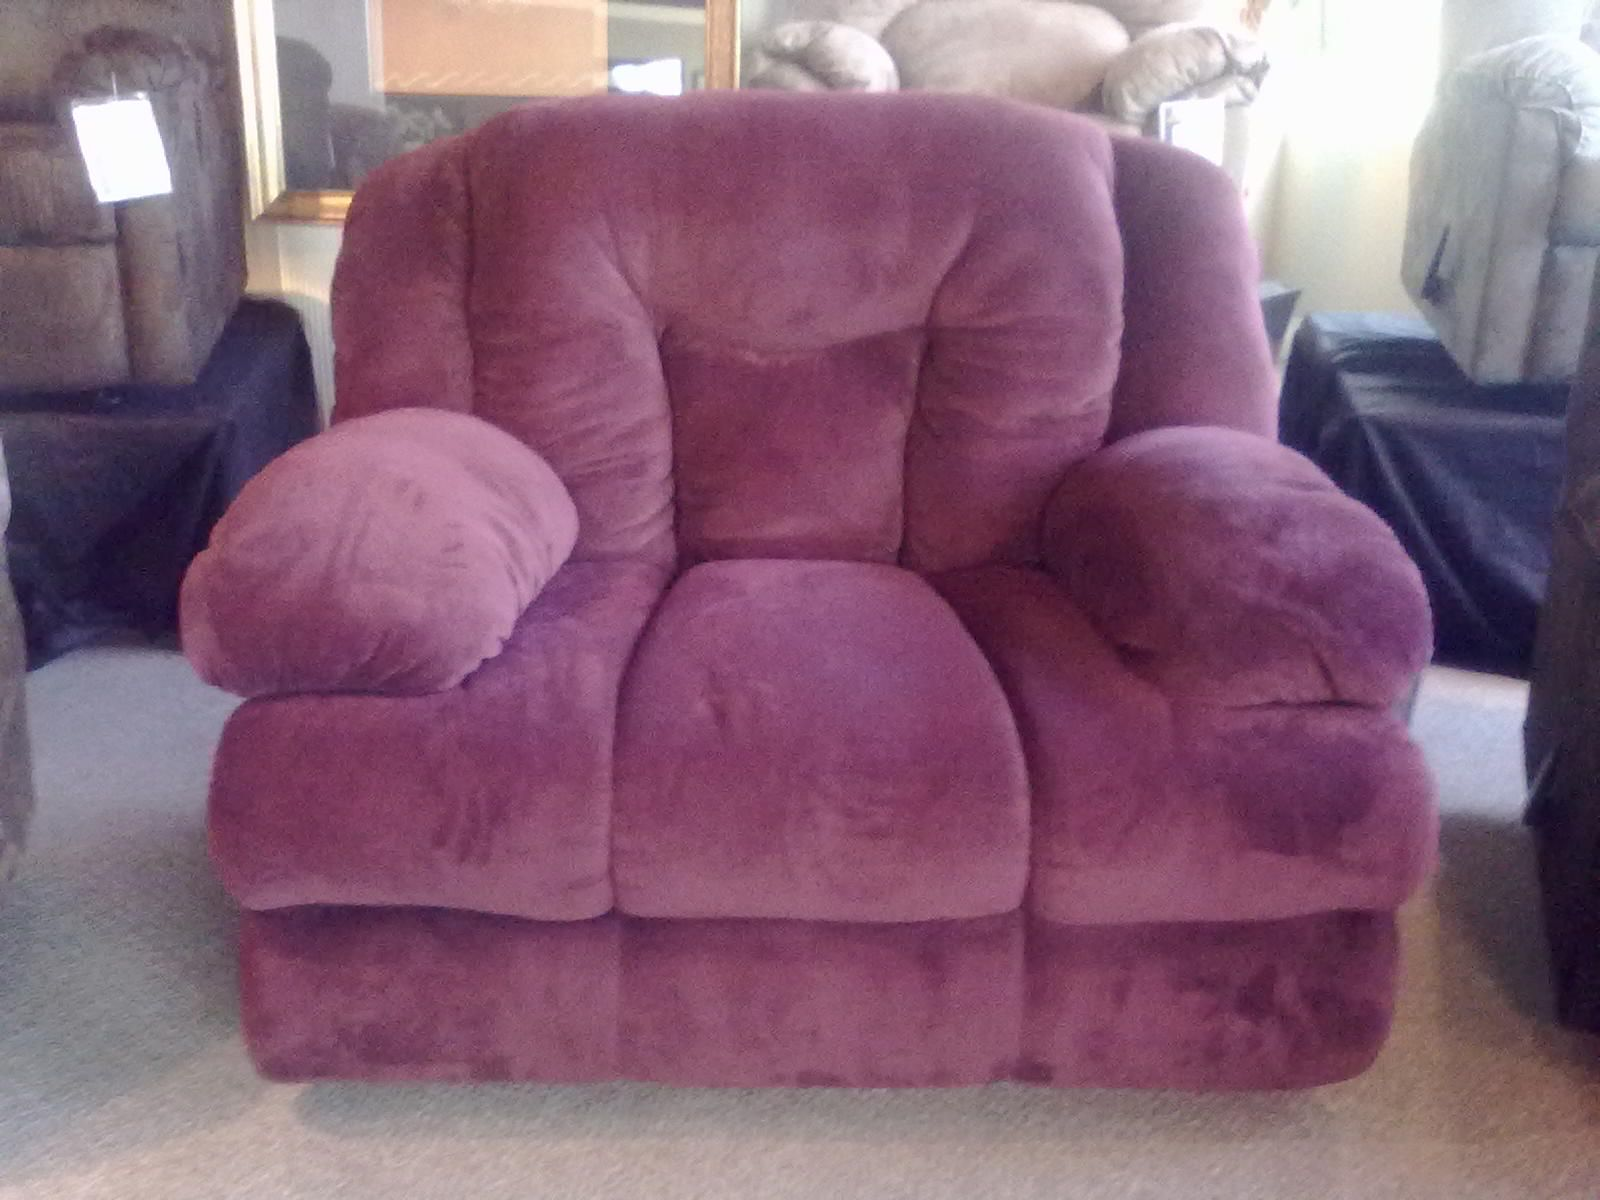 The Cuddle Couch Seats Two